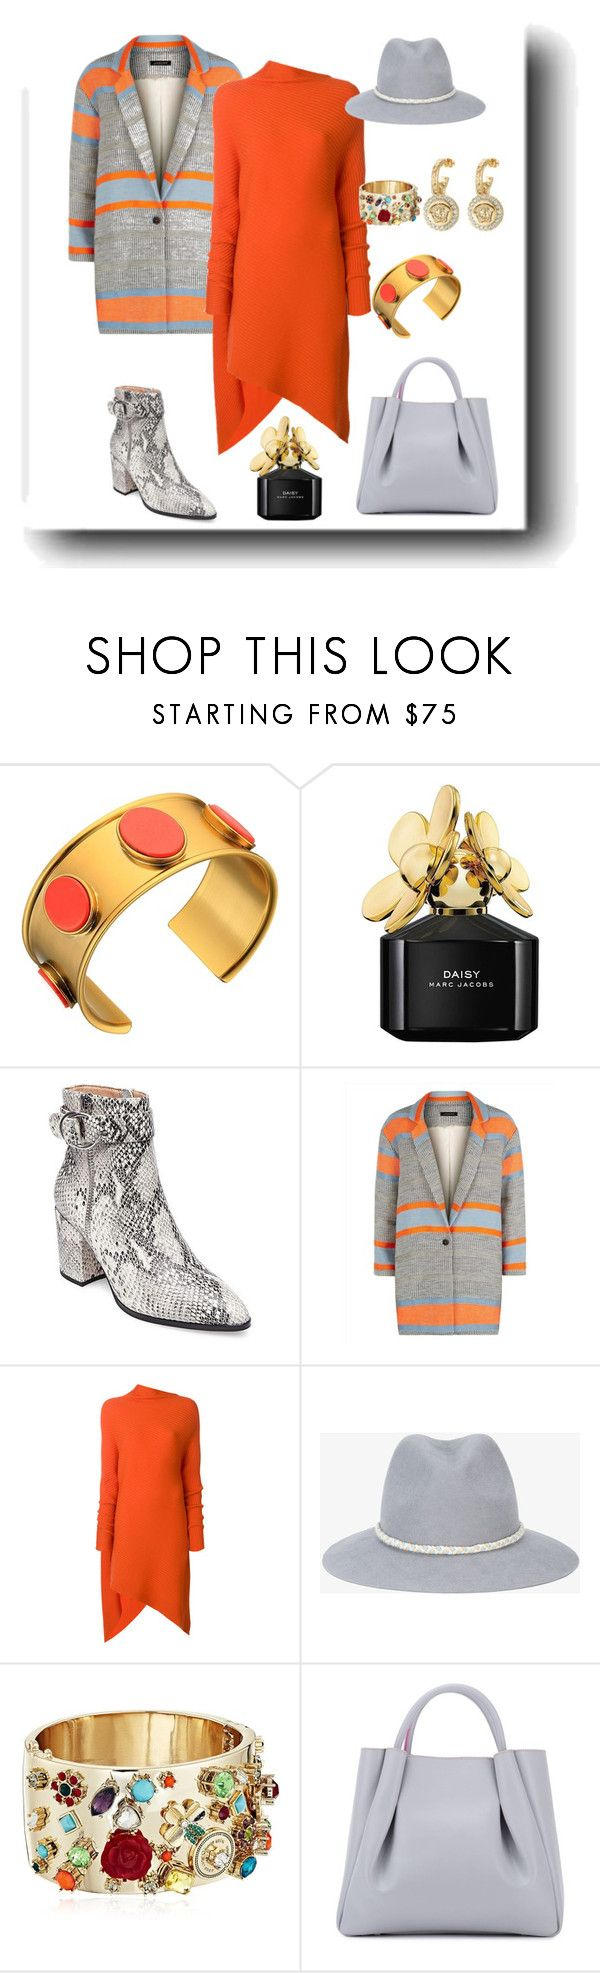 """""""Happy Thanksgiving 🍁🍽🦃"""" by soulchicjourneyatelier ❤ liked on Polyvore featuring Kate Spade, Marc Jacobs, Steven by Steve Madden, Jaeger, Marques'Almeida, YOSUZI, Betsey Johnson, Alexandra de Curtis and Versace"""